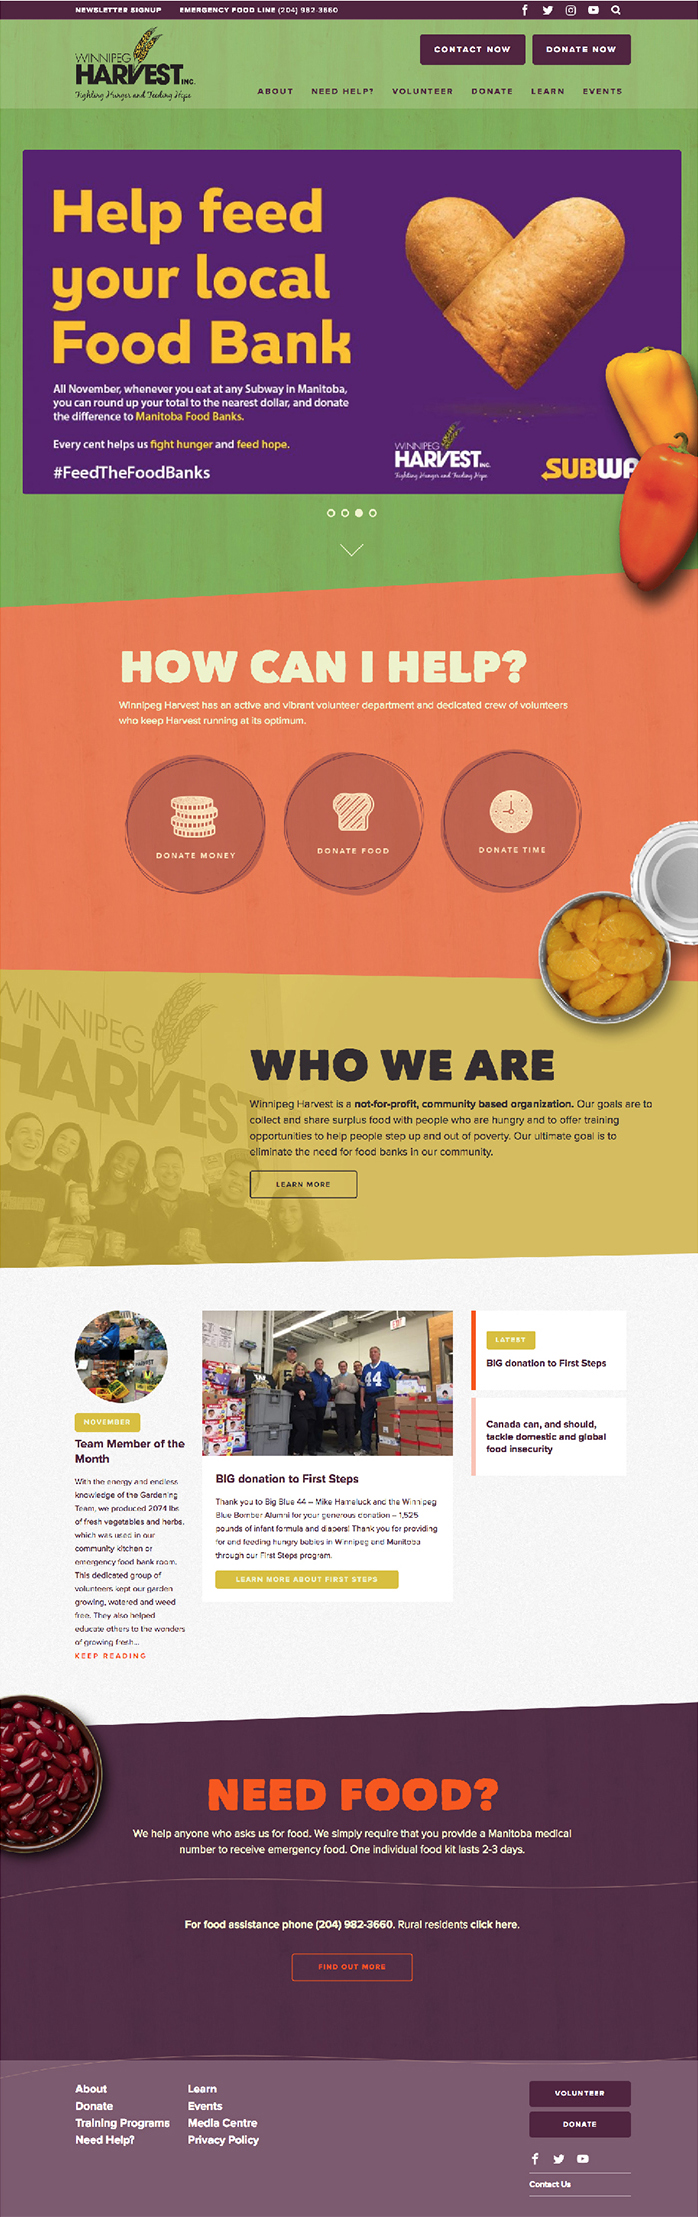 winnipeg harvest home page